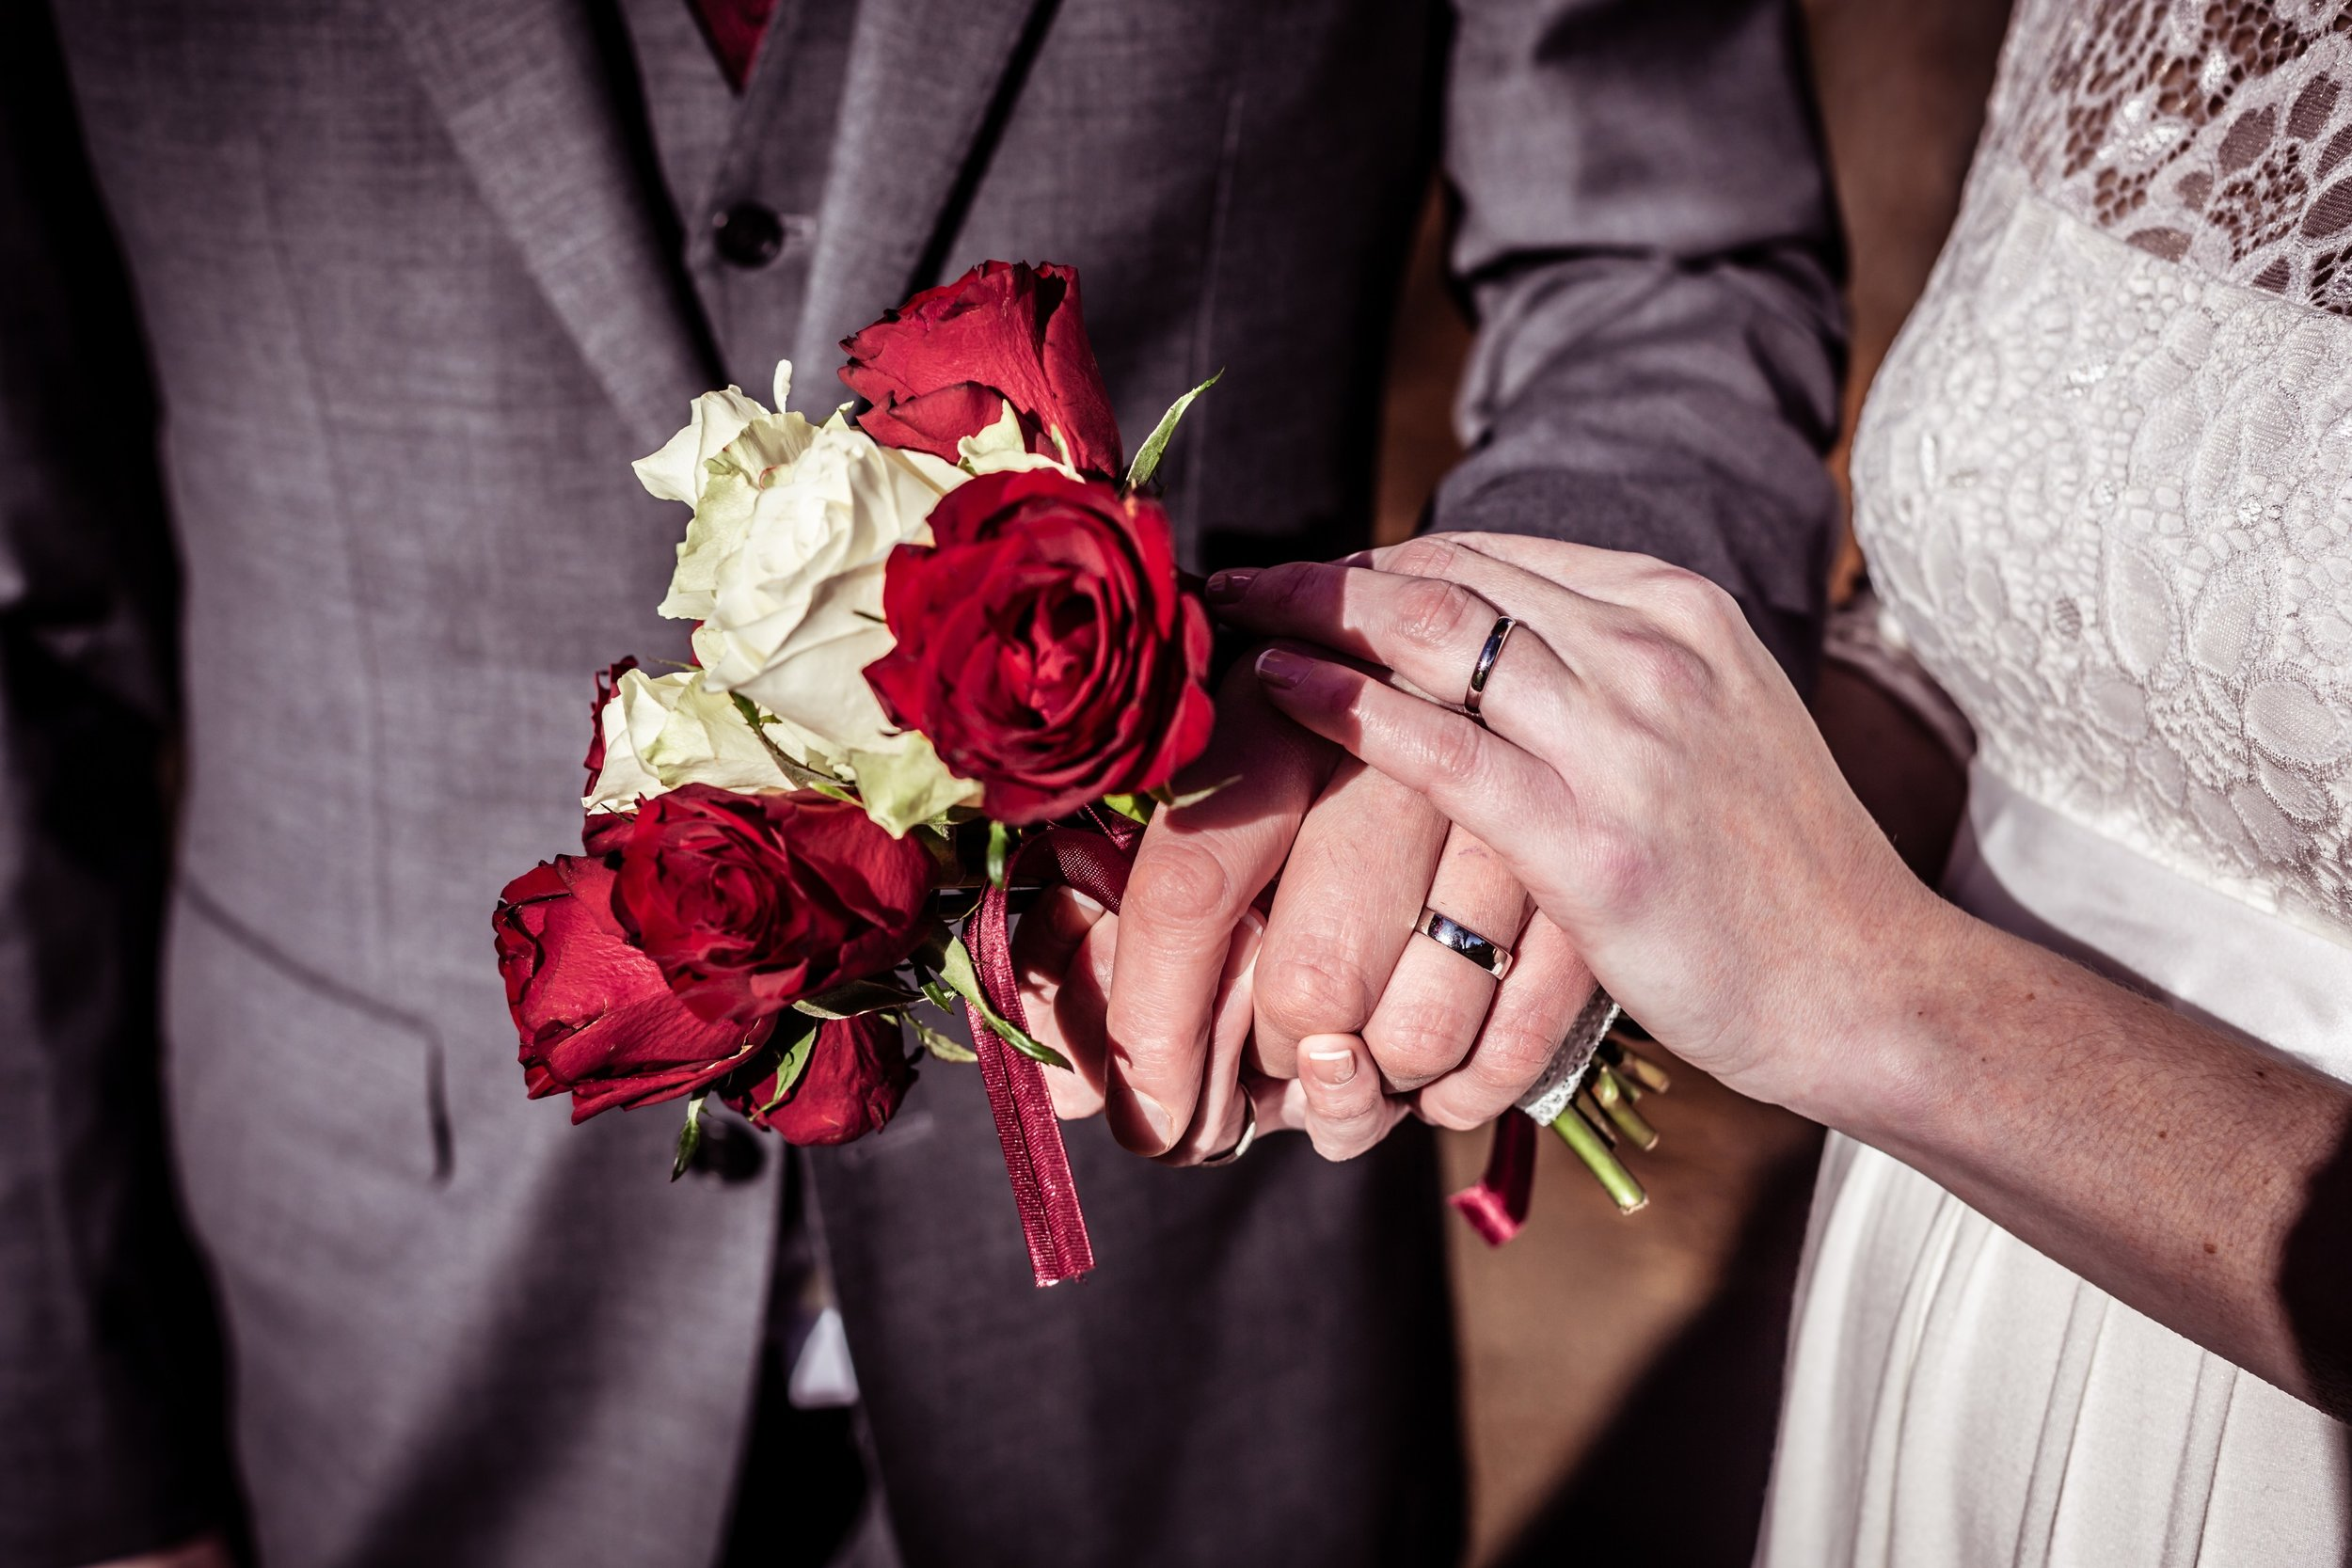 Mr&Mrs, just married, newlyweds, bride and groom, kettering, fotovida wedding photography, wedding rings, bouquet